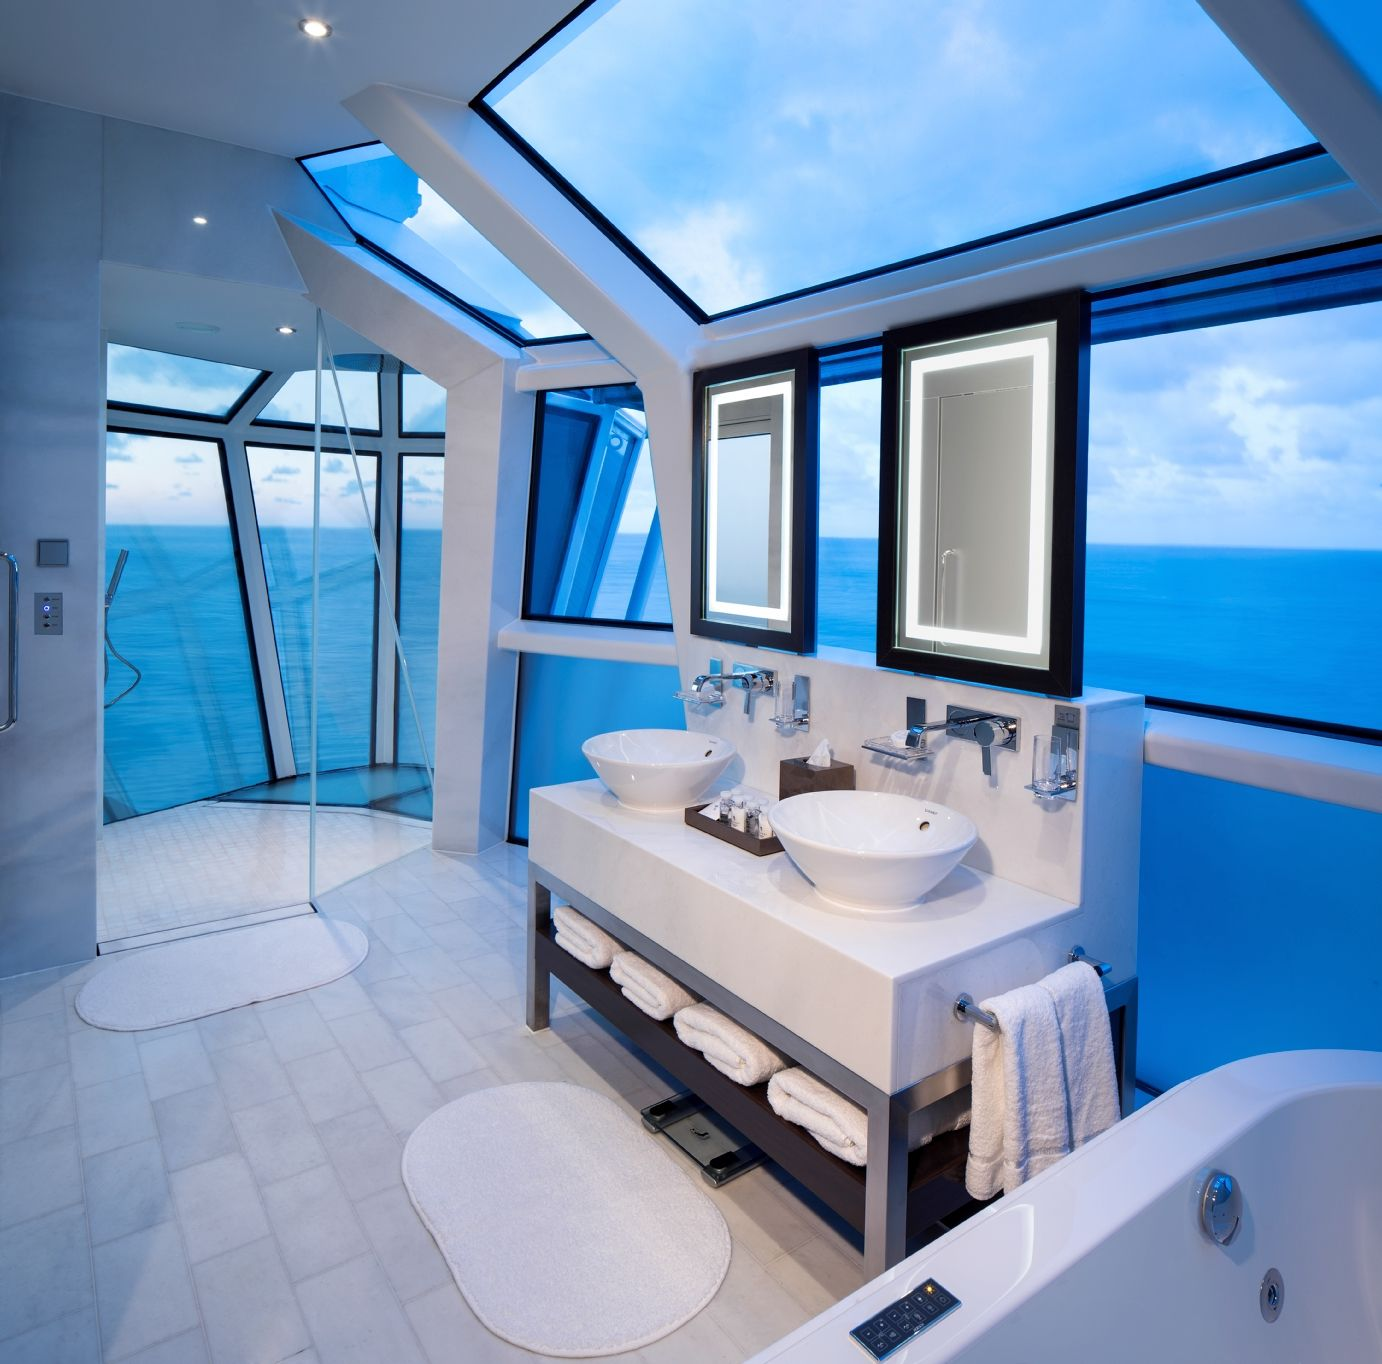 Celebrity Reflection Suite Bathroom with Cantilever Shower1 of